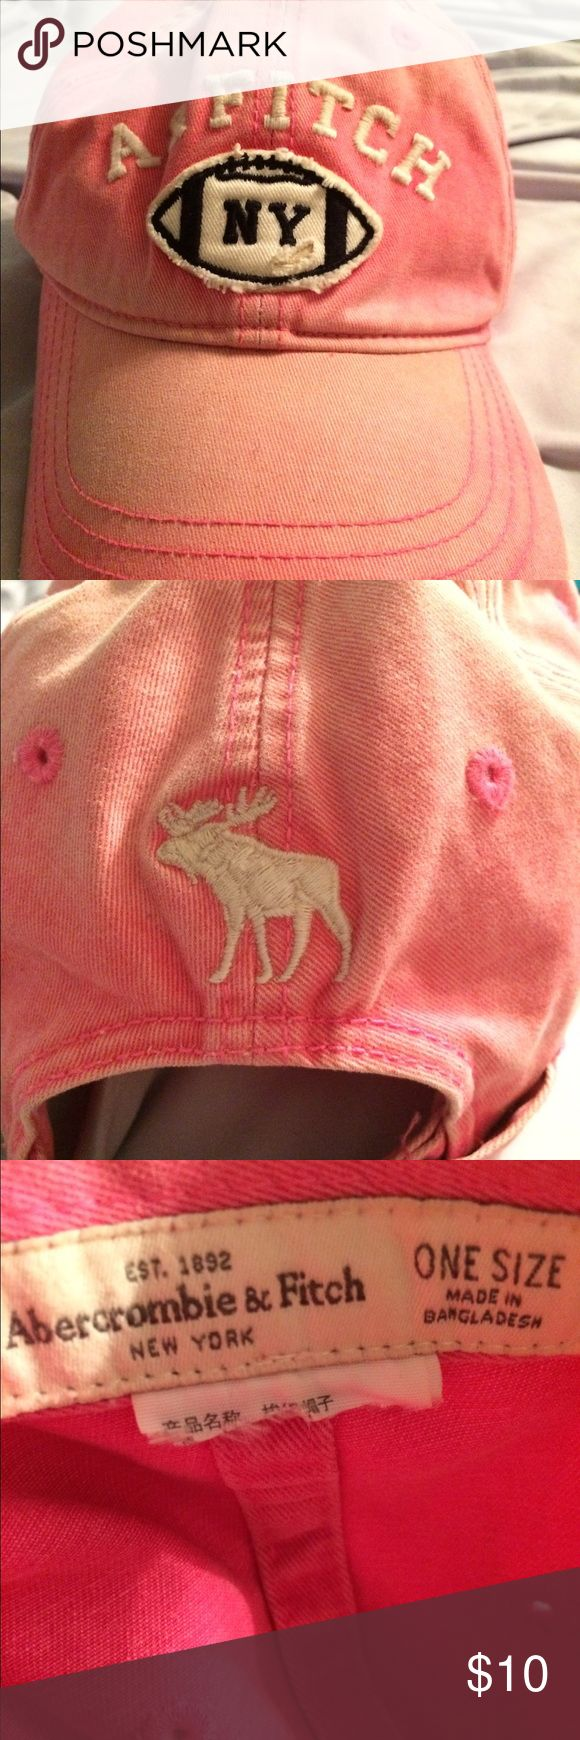 Abercrombie & Fitch Hot Pink Baseball Cap Hot Pink distressed baseball hat. Small makeup stain on the inside of the brim. Abercrombie & Fitch Accessories Hats